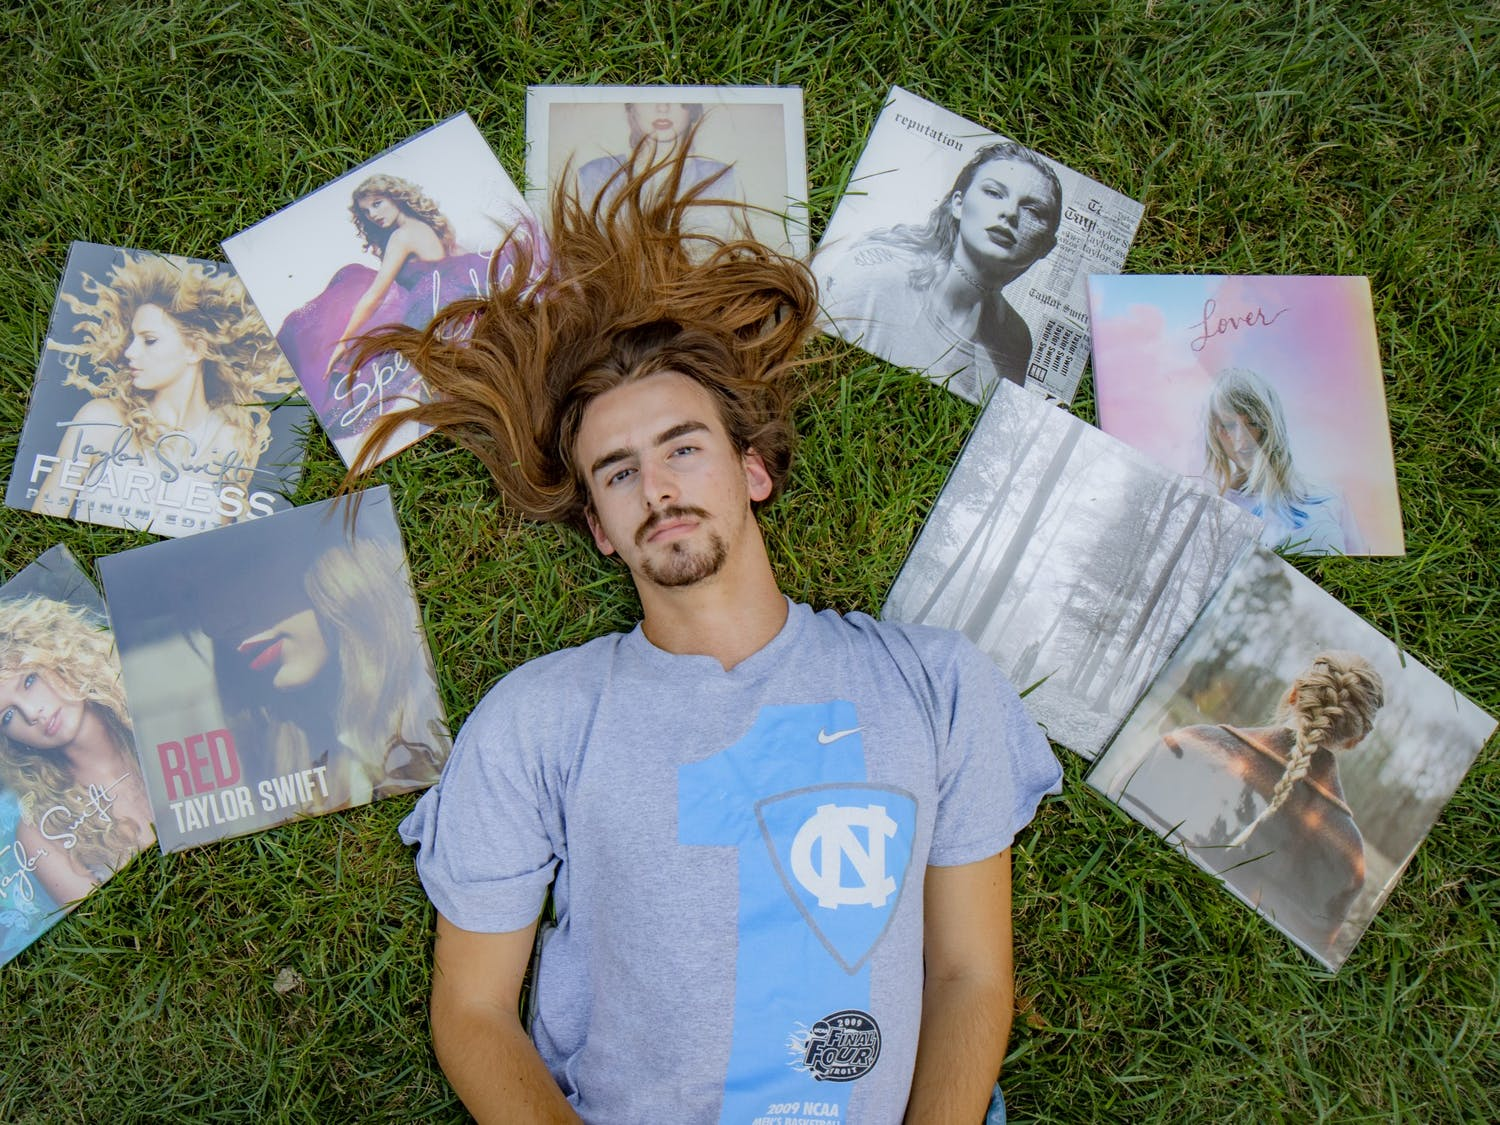 DTH Photo Illustration. Assistant Photo Editor and Resident Taylor Swift Expert Ira Wilder lays in the grass with his collection of Taylor Swift vinyls.